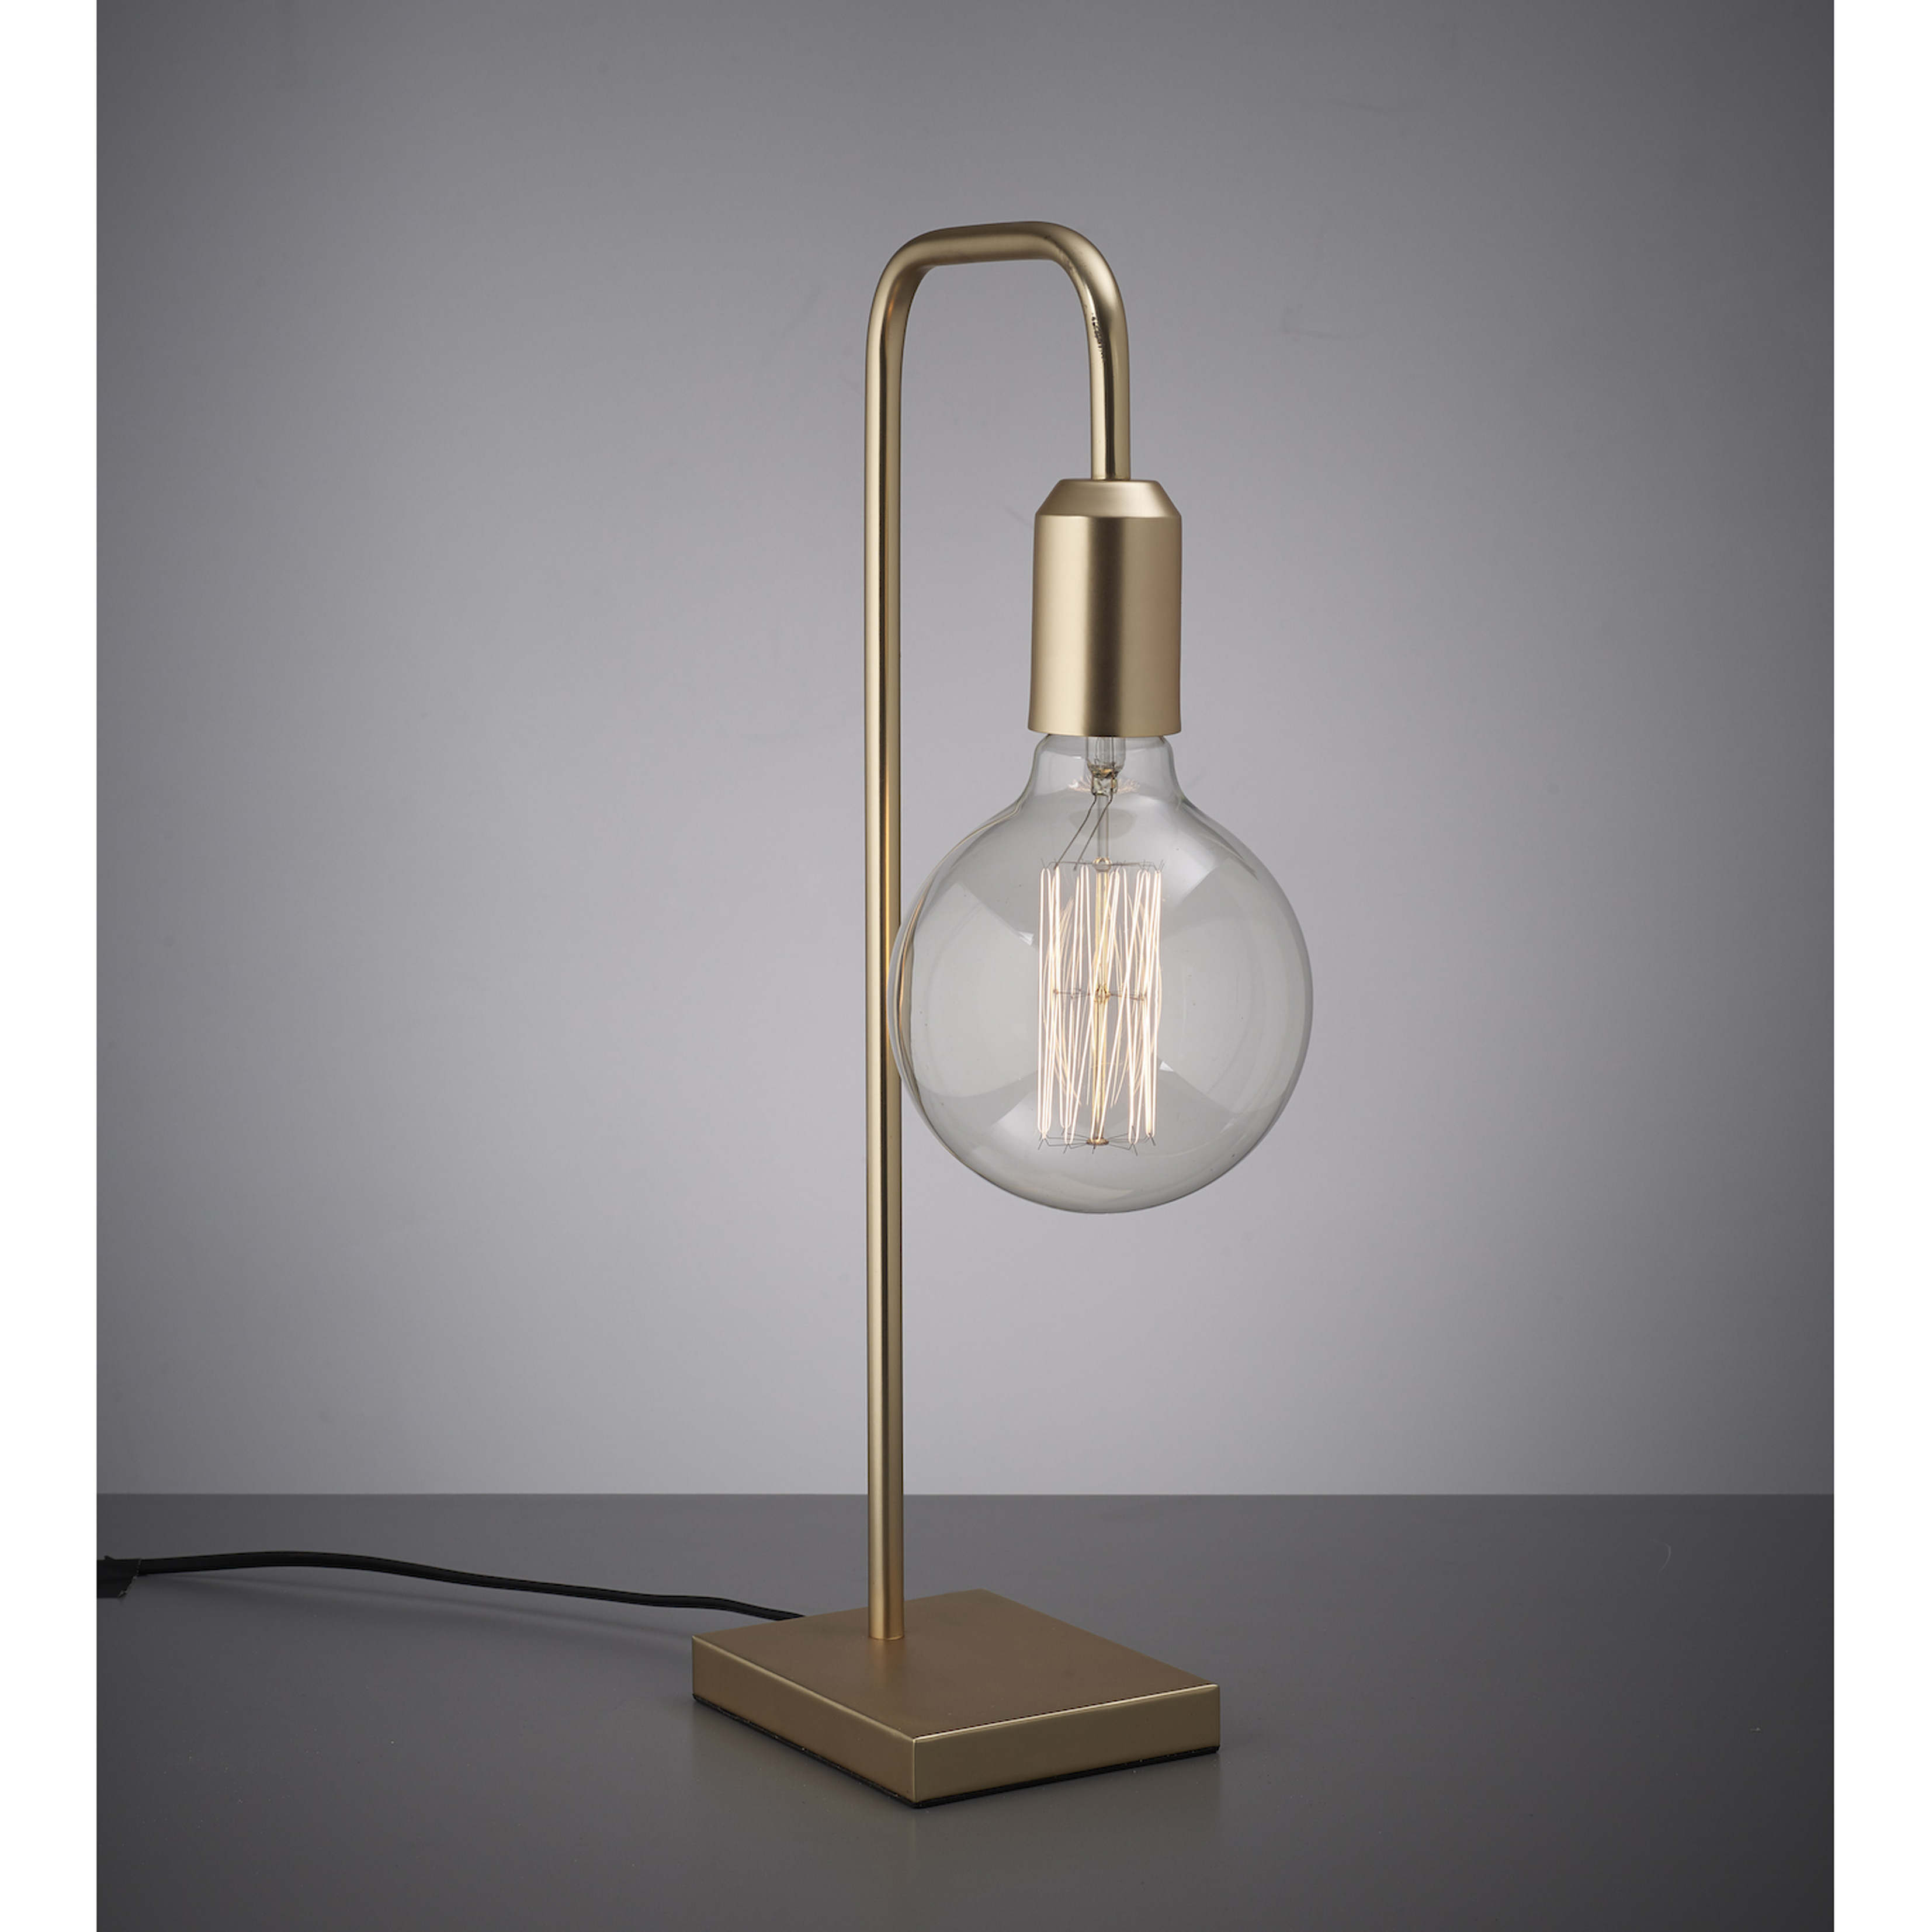 Golden table lamp with round globe bulb aloadofball Gallery